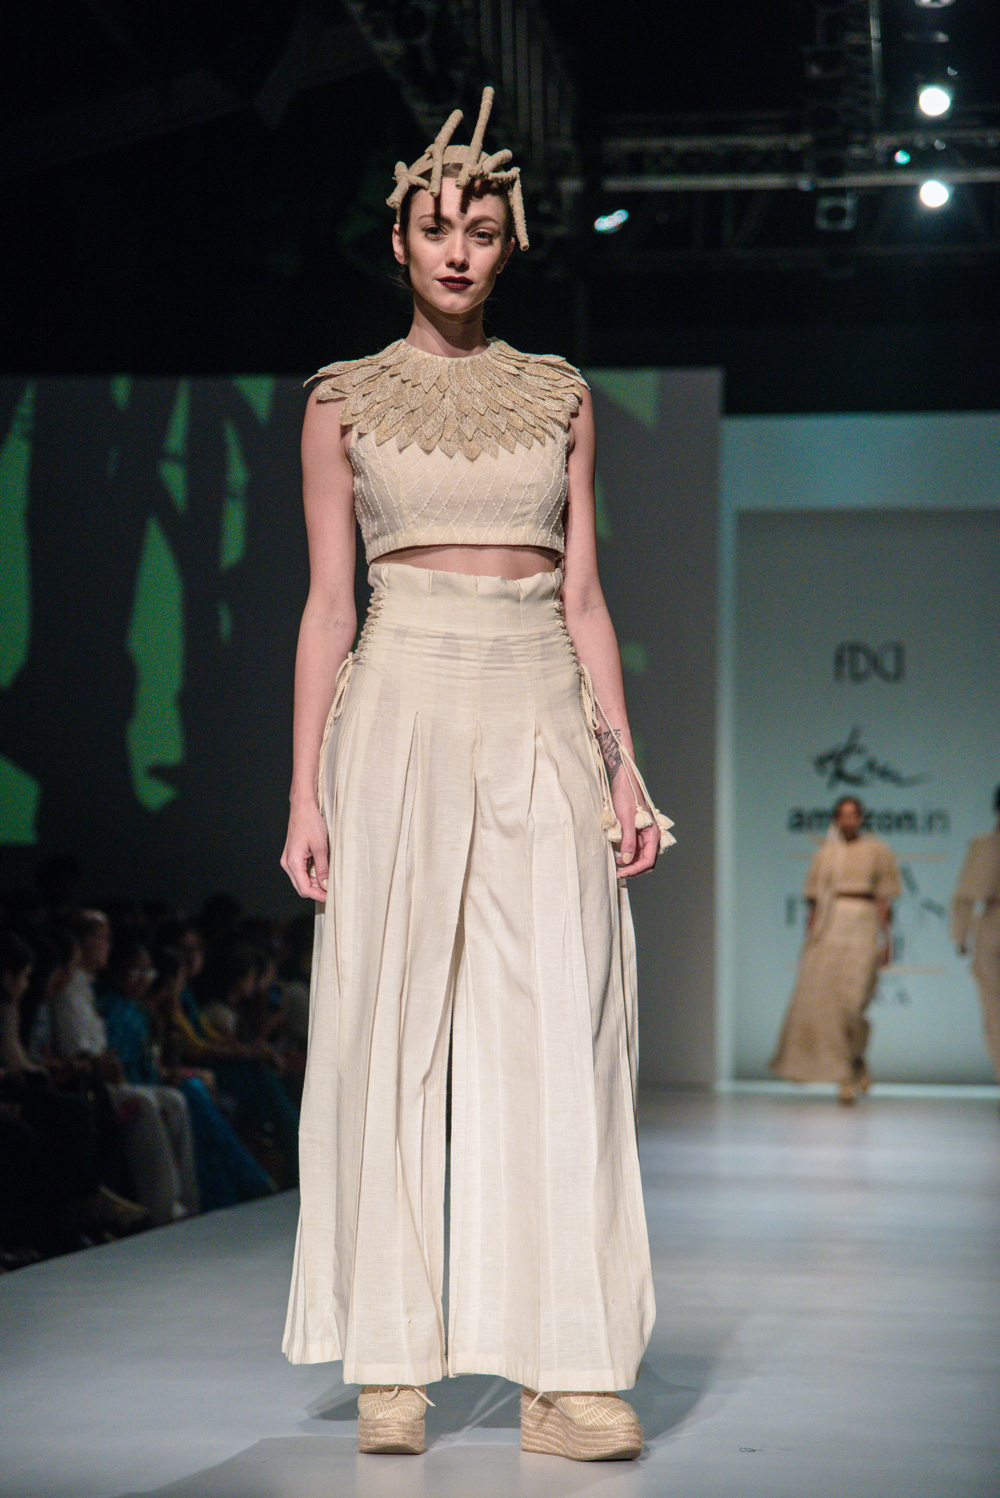 Ekru by Ektaa FDCI Amazon India Fashion Week Spring Summer 2018 Look 7